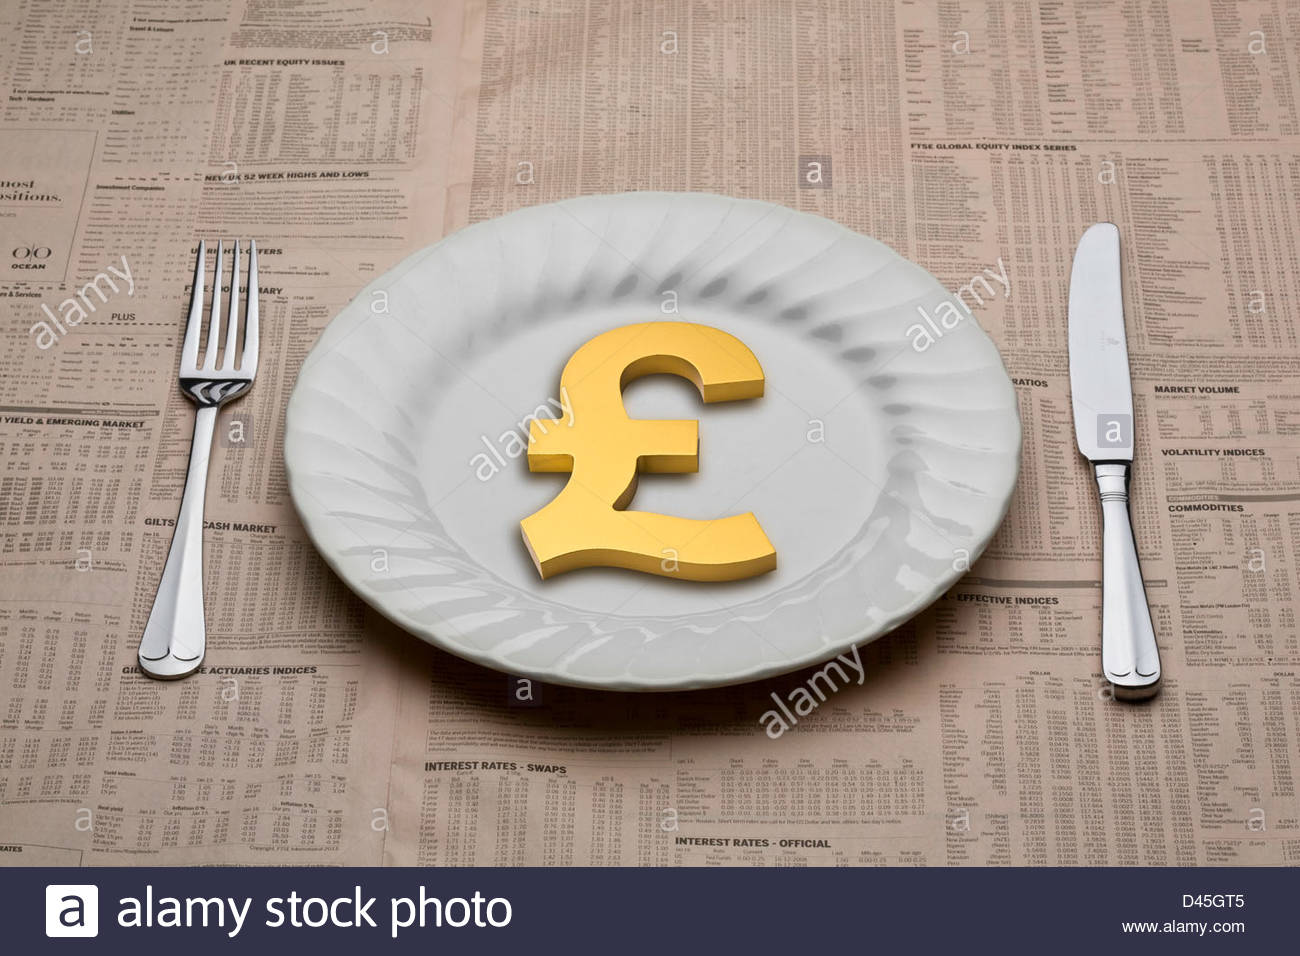 Pound symbol on a dinner plate with a knife and fork ready to eat for lunch on a table cloth of a financial newspaper - Stock Image